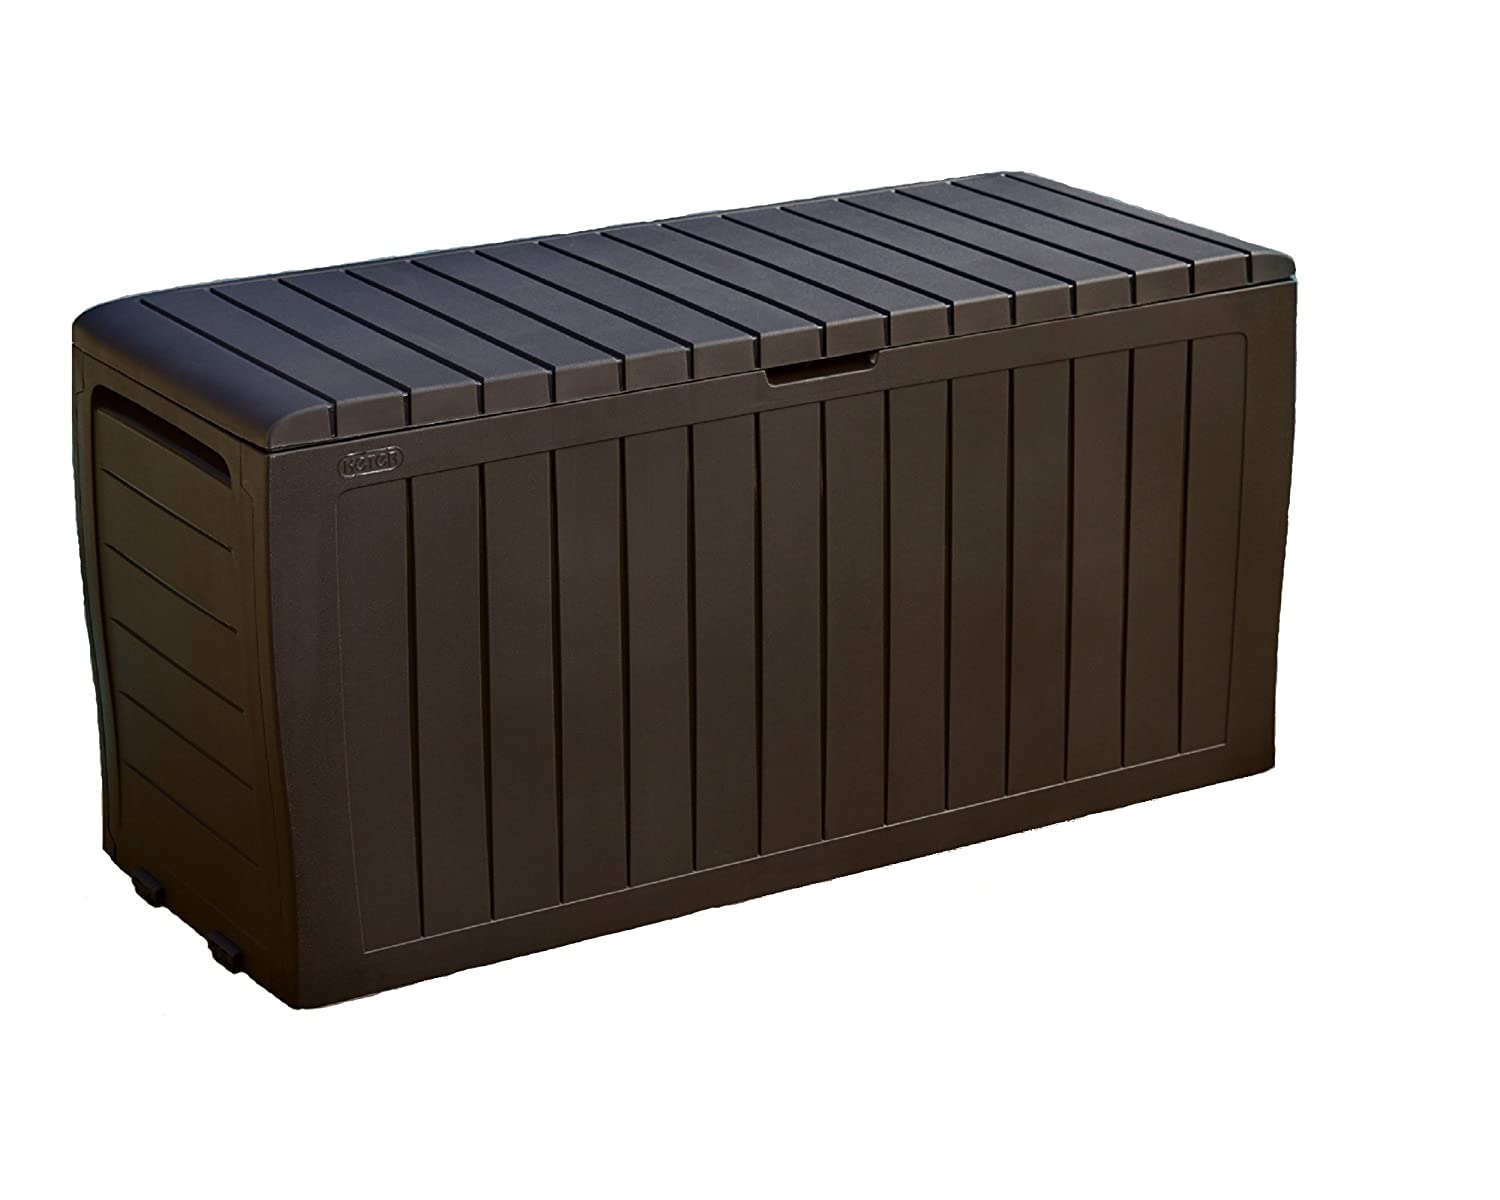 Keter Marvel Plus 71 Gallon Resin Plastic Wood Look All Weather Outdoor Storage Deck Box, Brown 230623